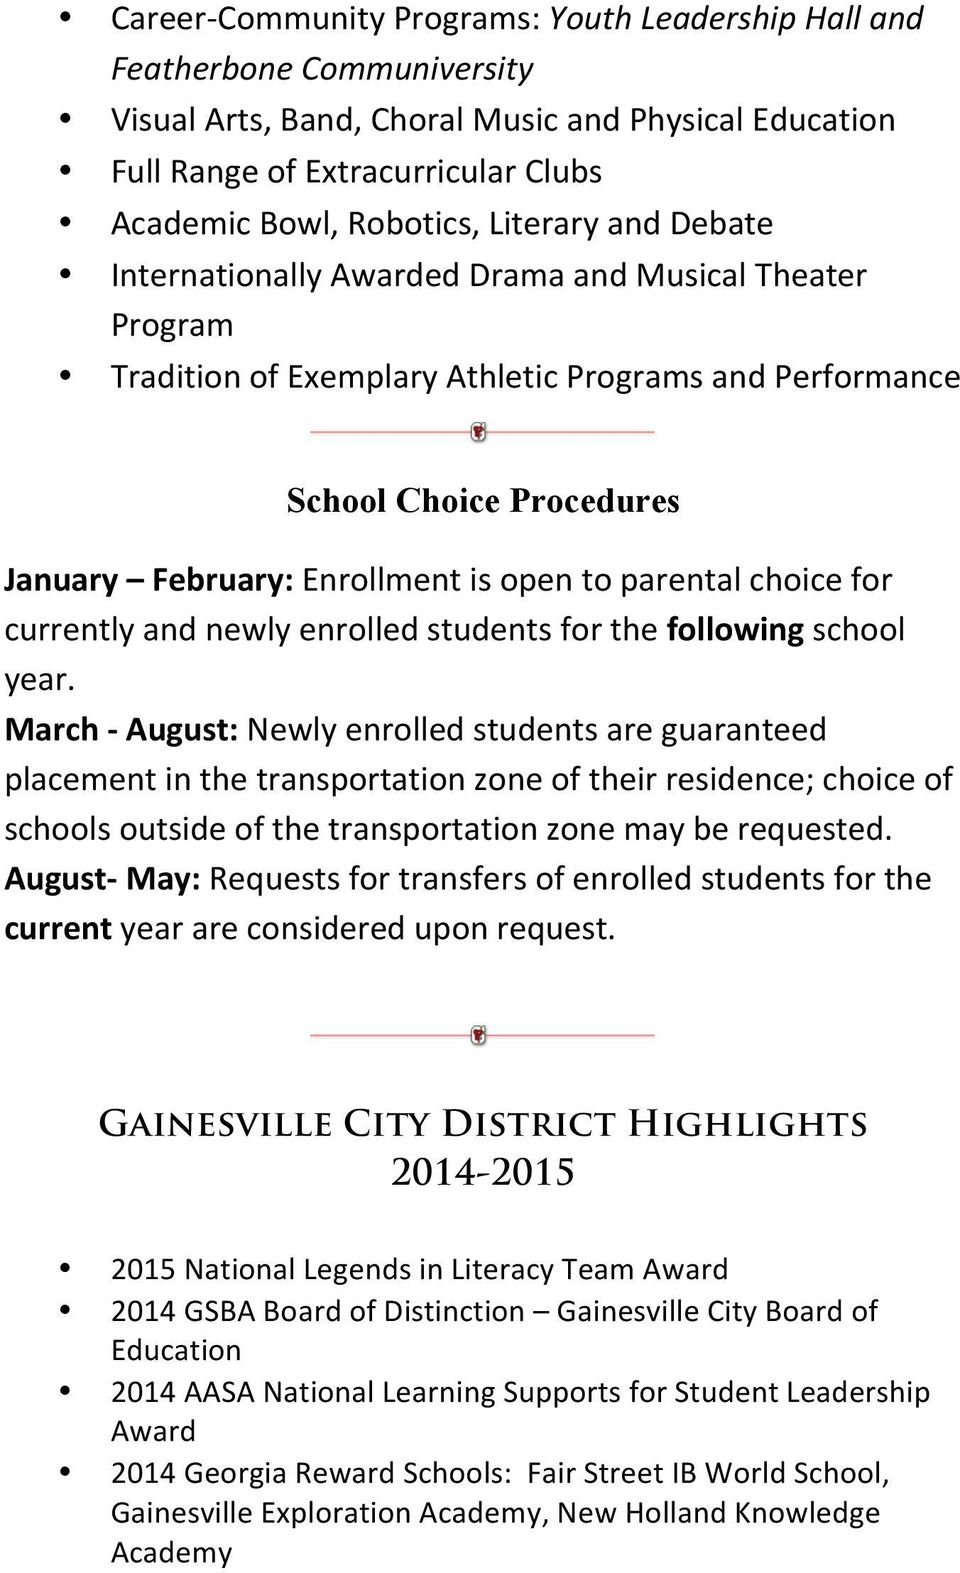 parental choice for currently and newly enrolled students for the following school year.